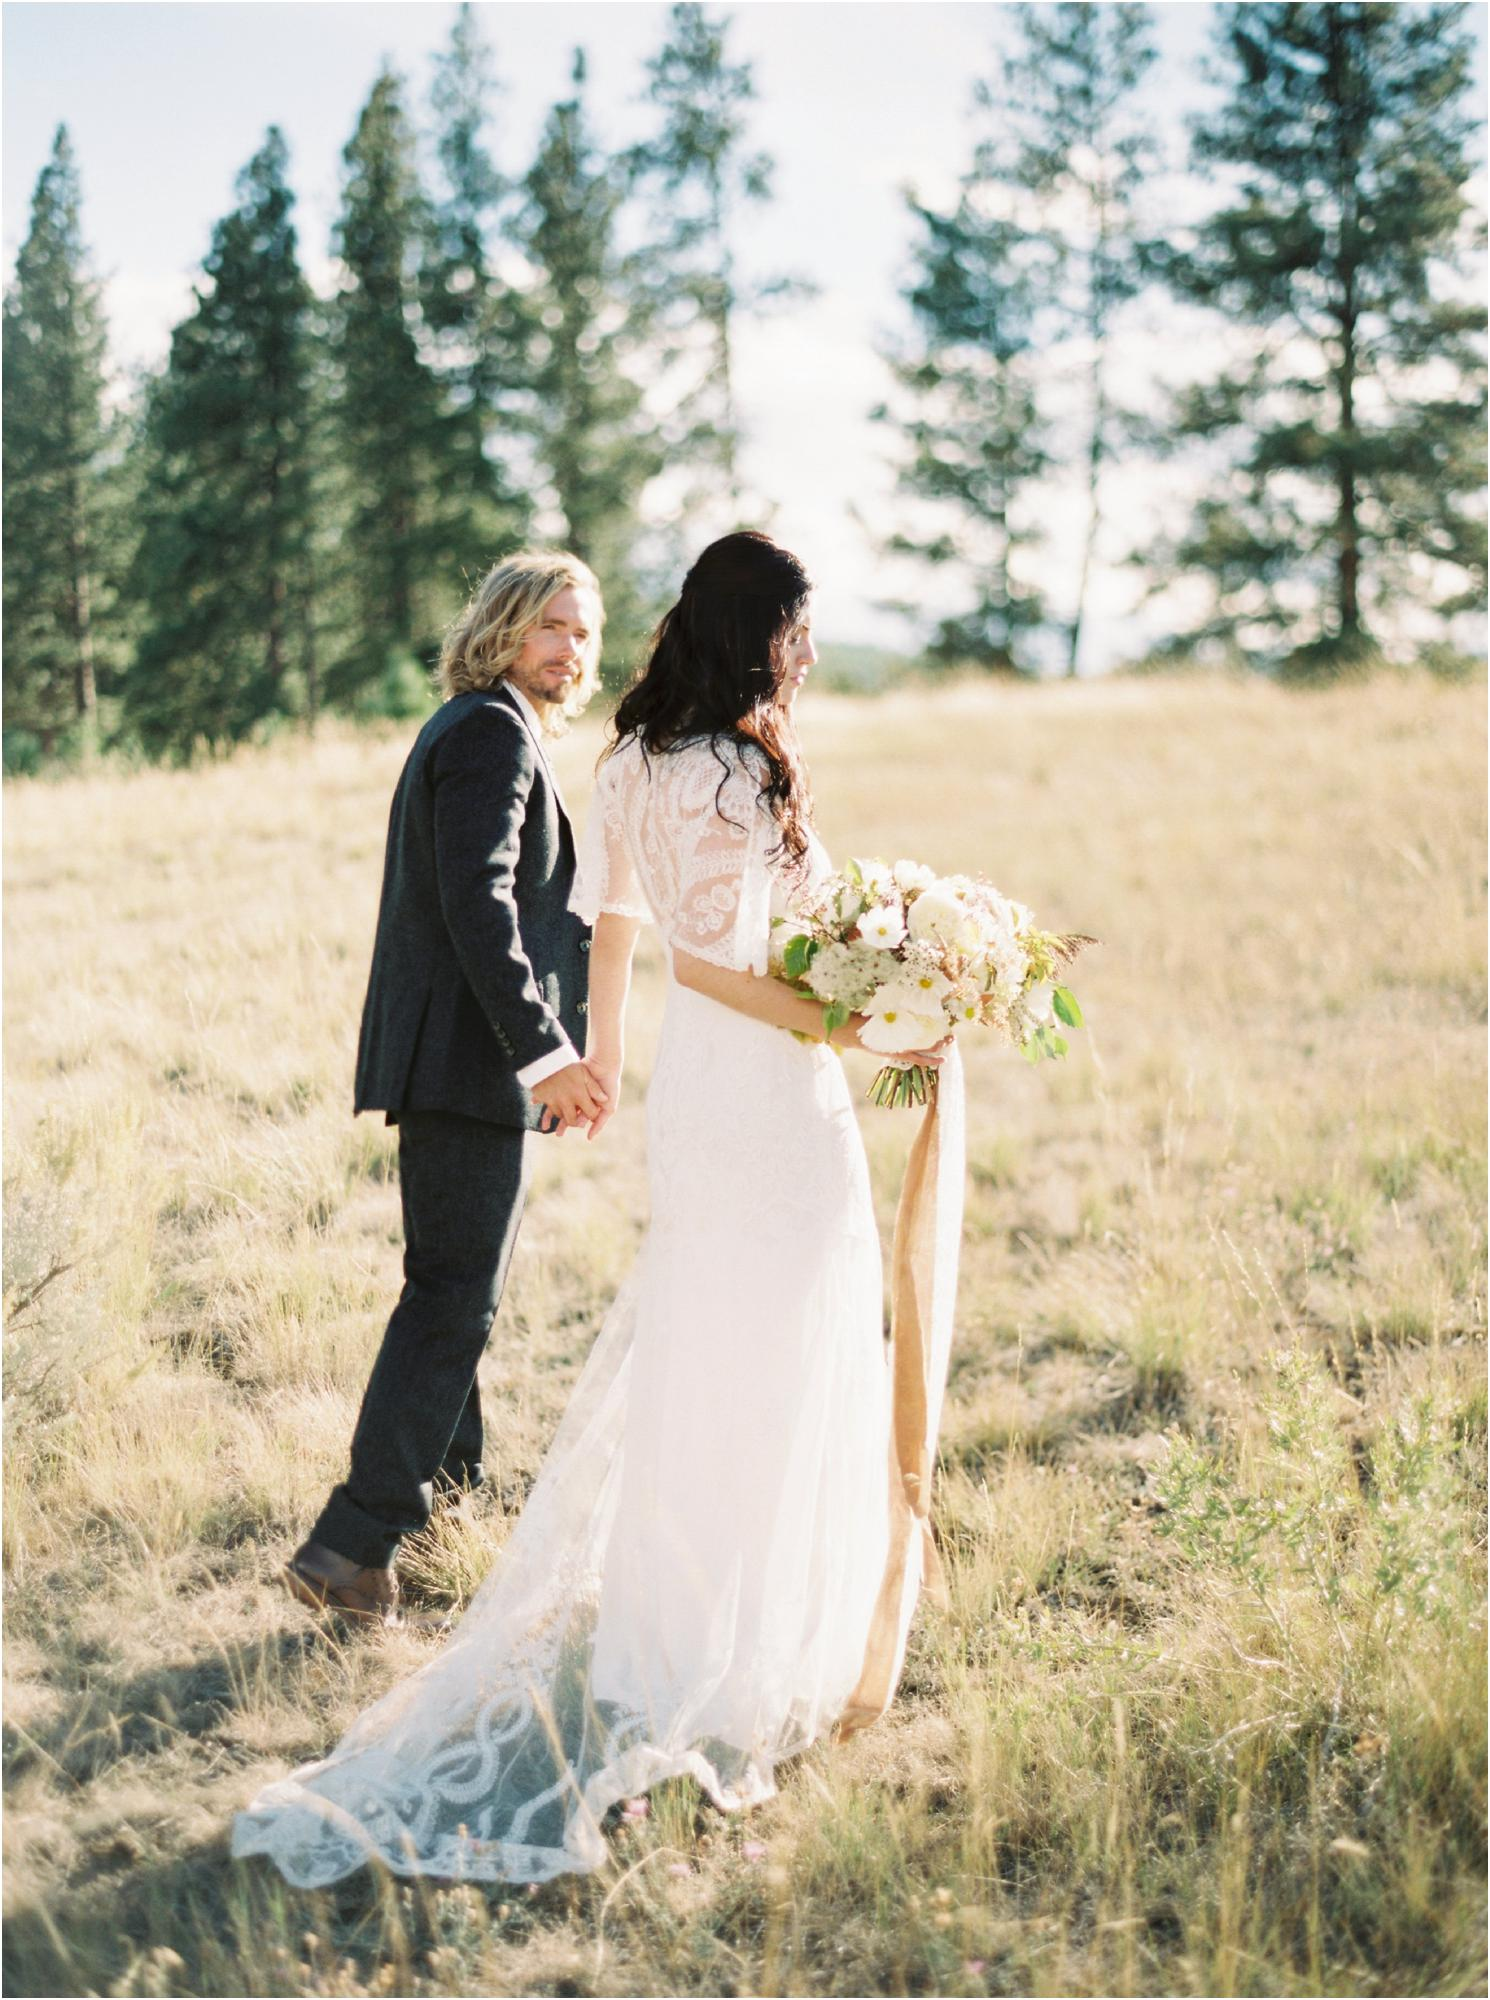 Montana Wedding at the Resort at Paws Up  Design and Florals by Greenwood Events http://www.greenwood.events/   ©Jeremiah & Rachel Photography